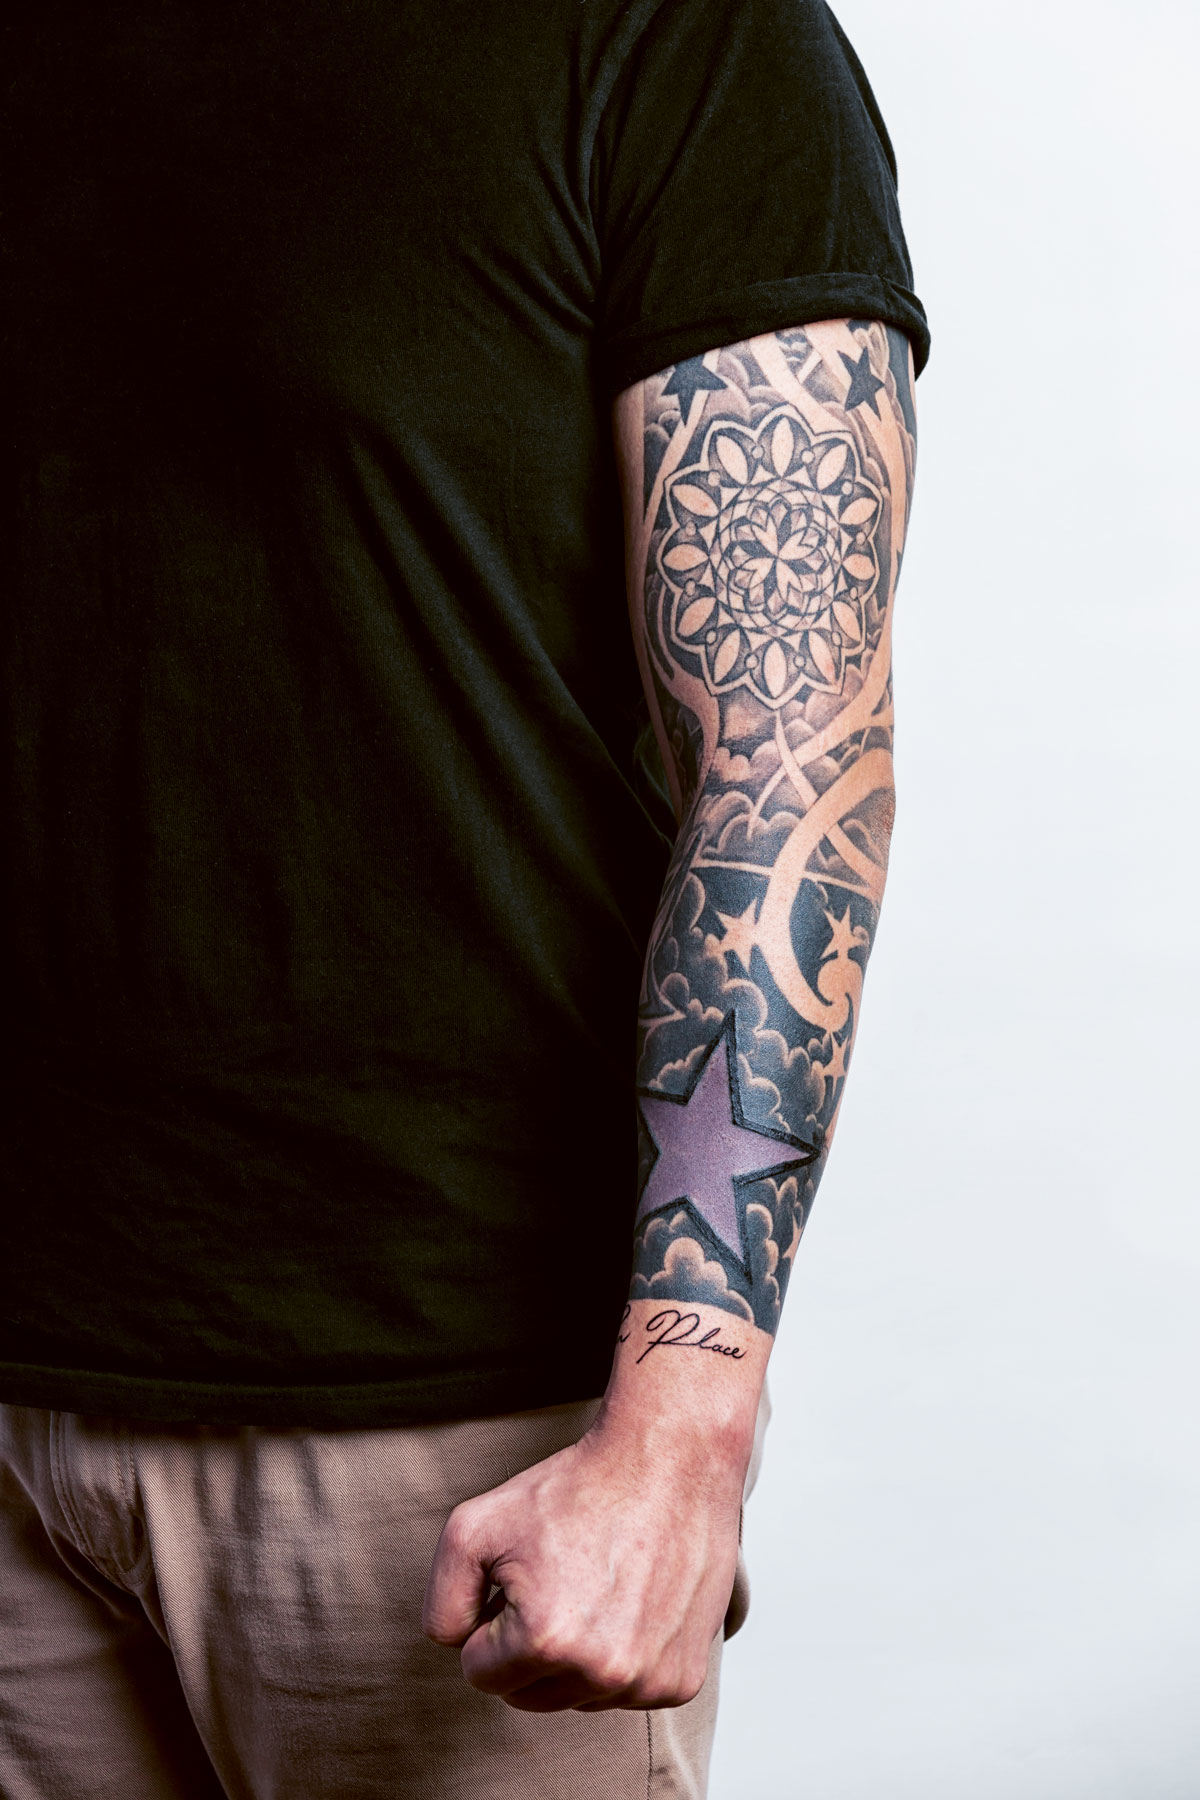 Chef and food consultant Francis Lim's tattoos are inked on his left arm, his non-dominant cooking arm